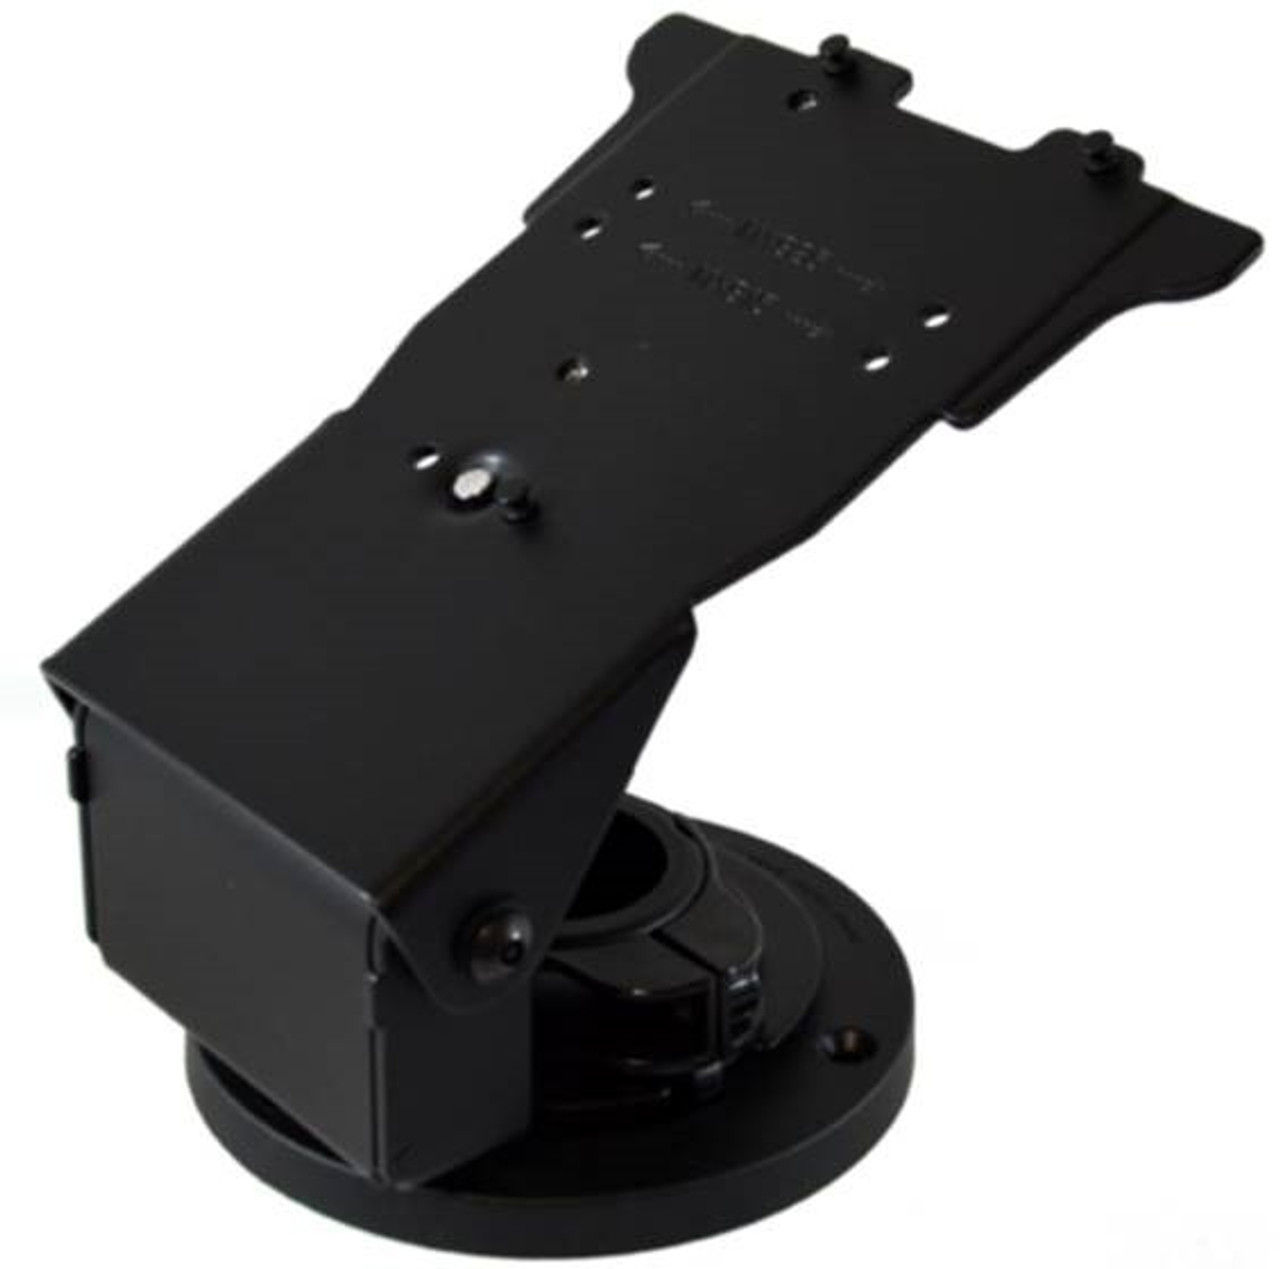 Swivel Stands POS Stand Open Hole Flip Up VeriFone MX915 EMV Clearance